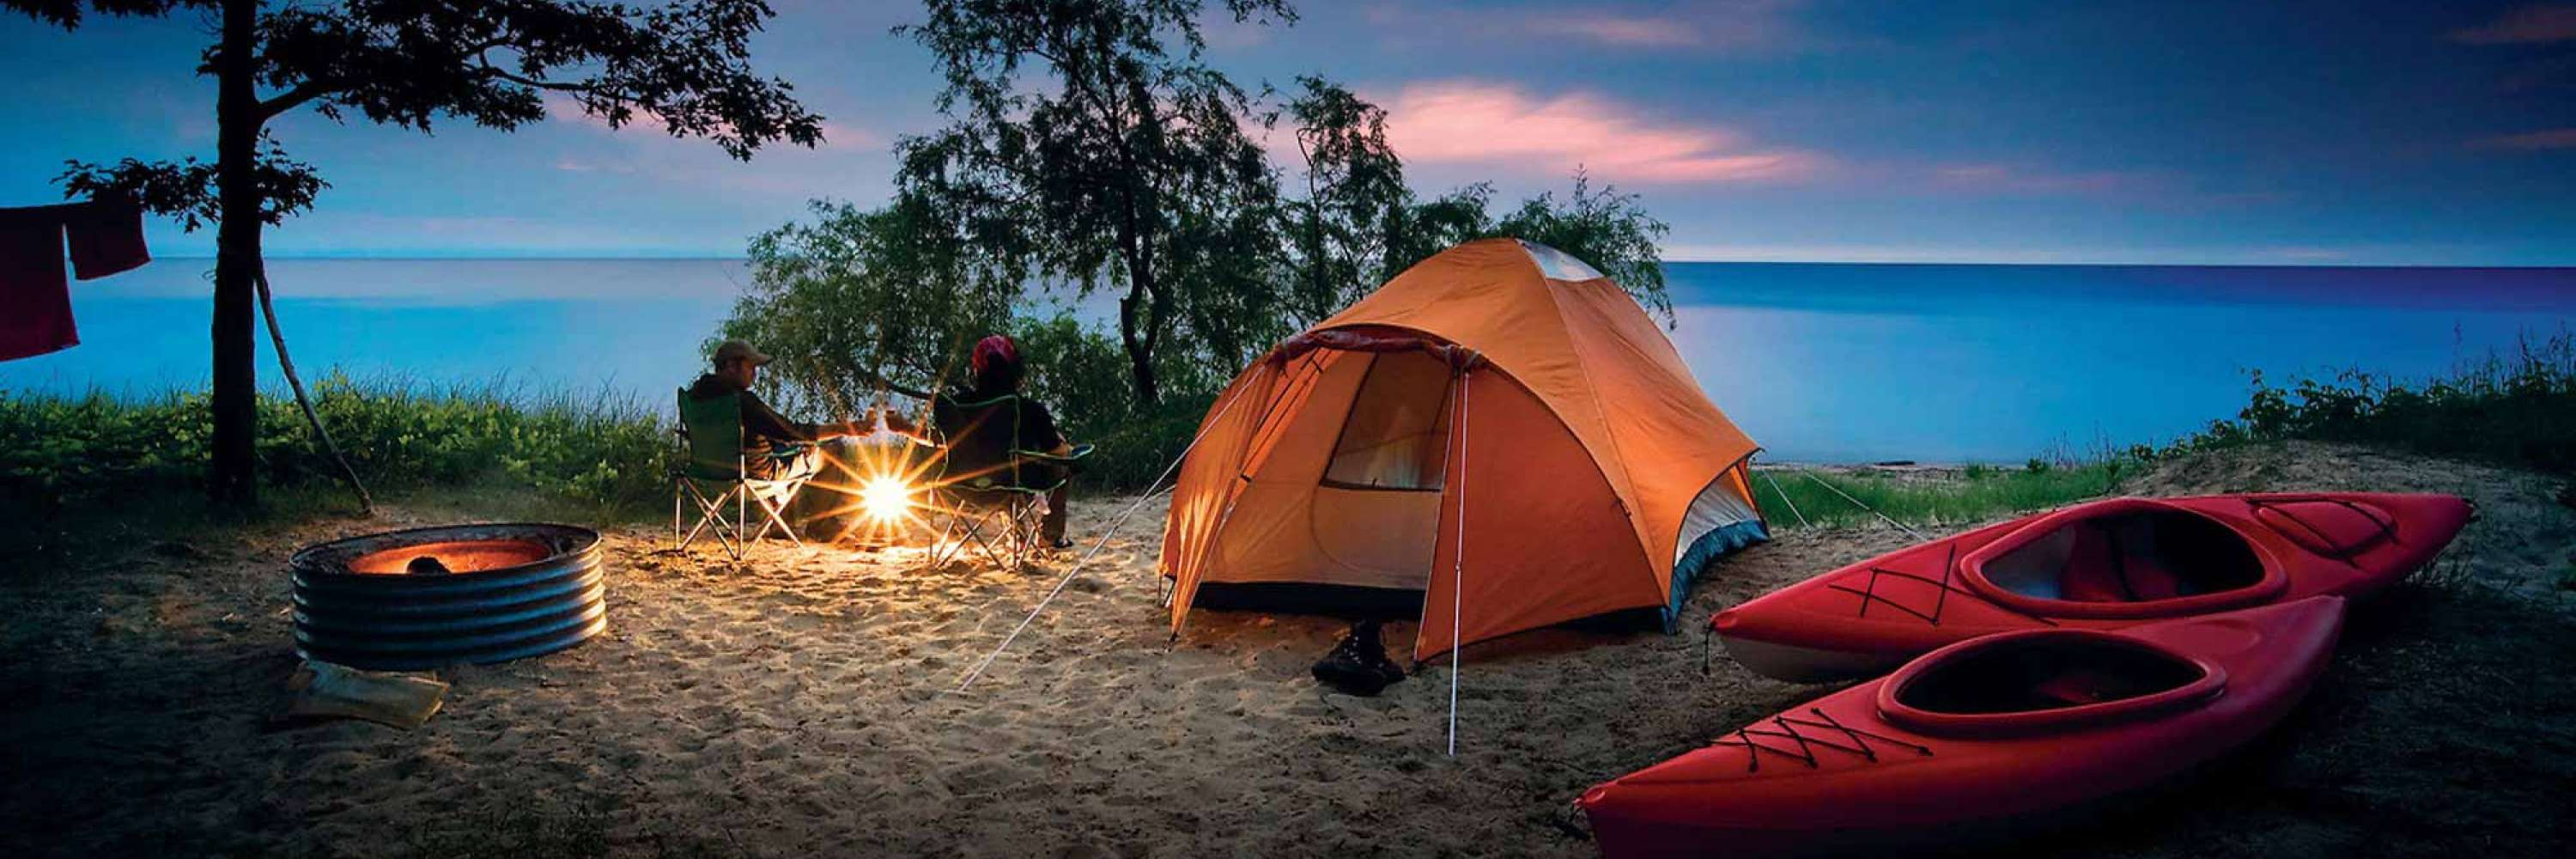 Camping pictures pic 77